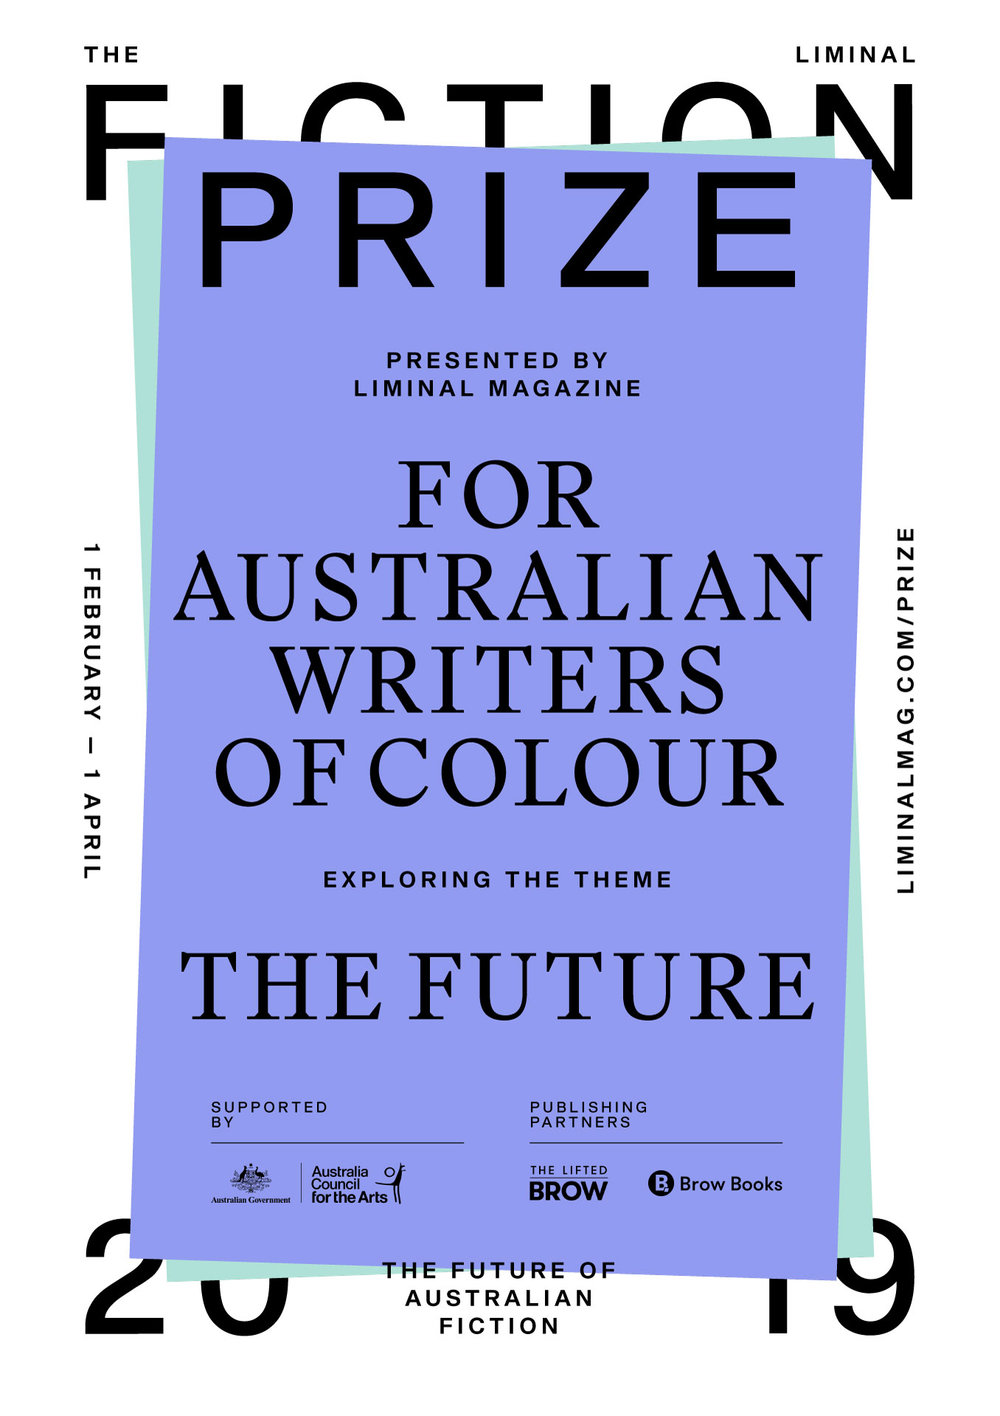 LIMINAL_FICTION_PRIZE_WEB_FLYER_STAGE02.jpg